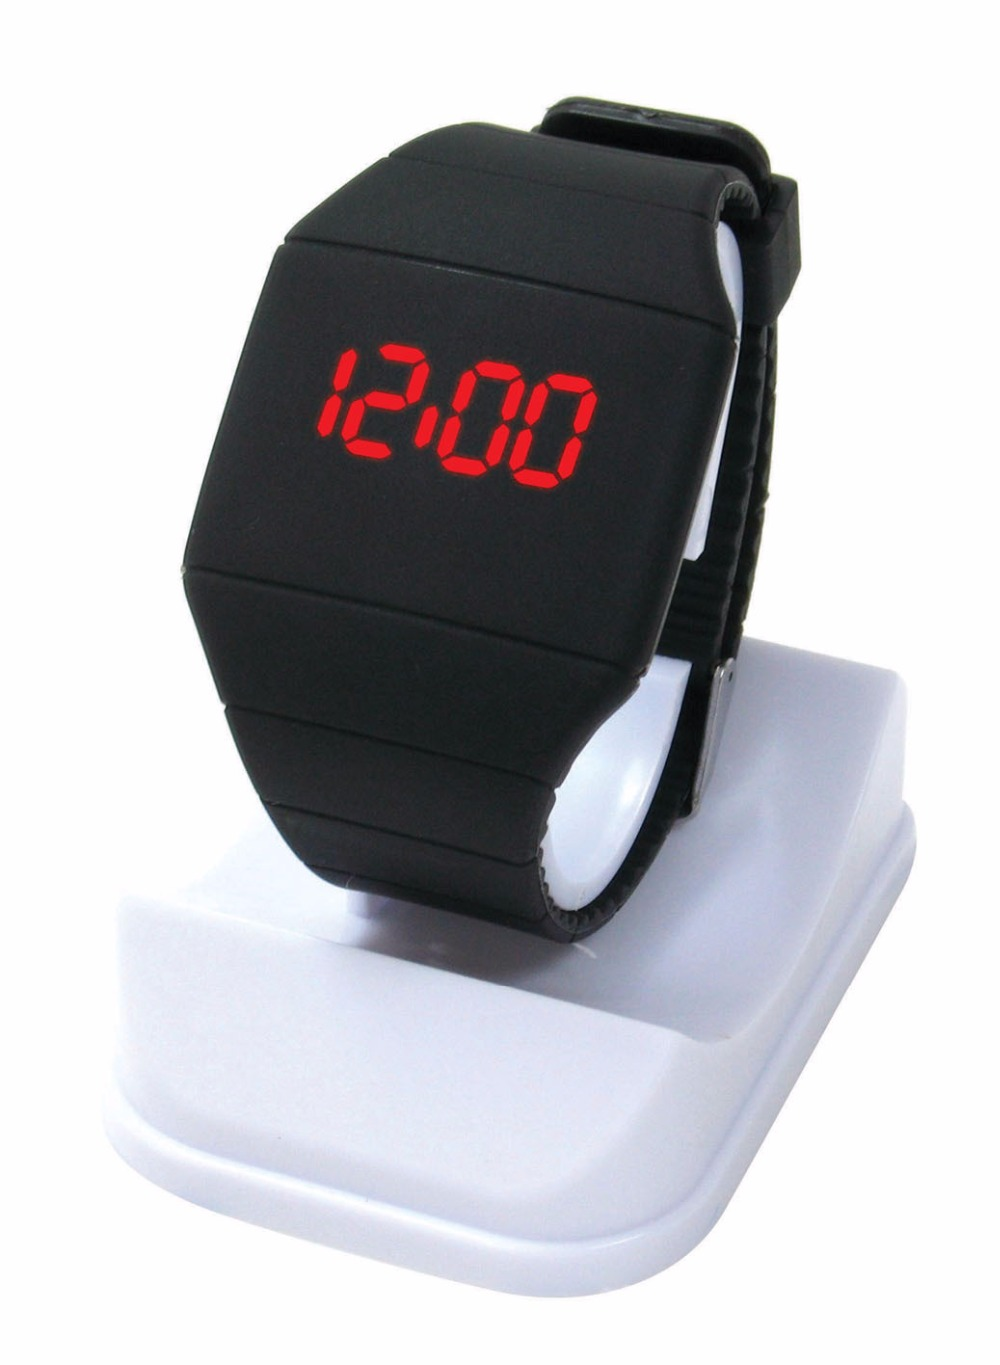 New LED watch Fashion design silicone hand ring sports watches For boy girl student touch screen digital watch relogio masculino new cartoon children watch girl watches fashion boy kids student cute leather sports analog wrist watches relojes k519